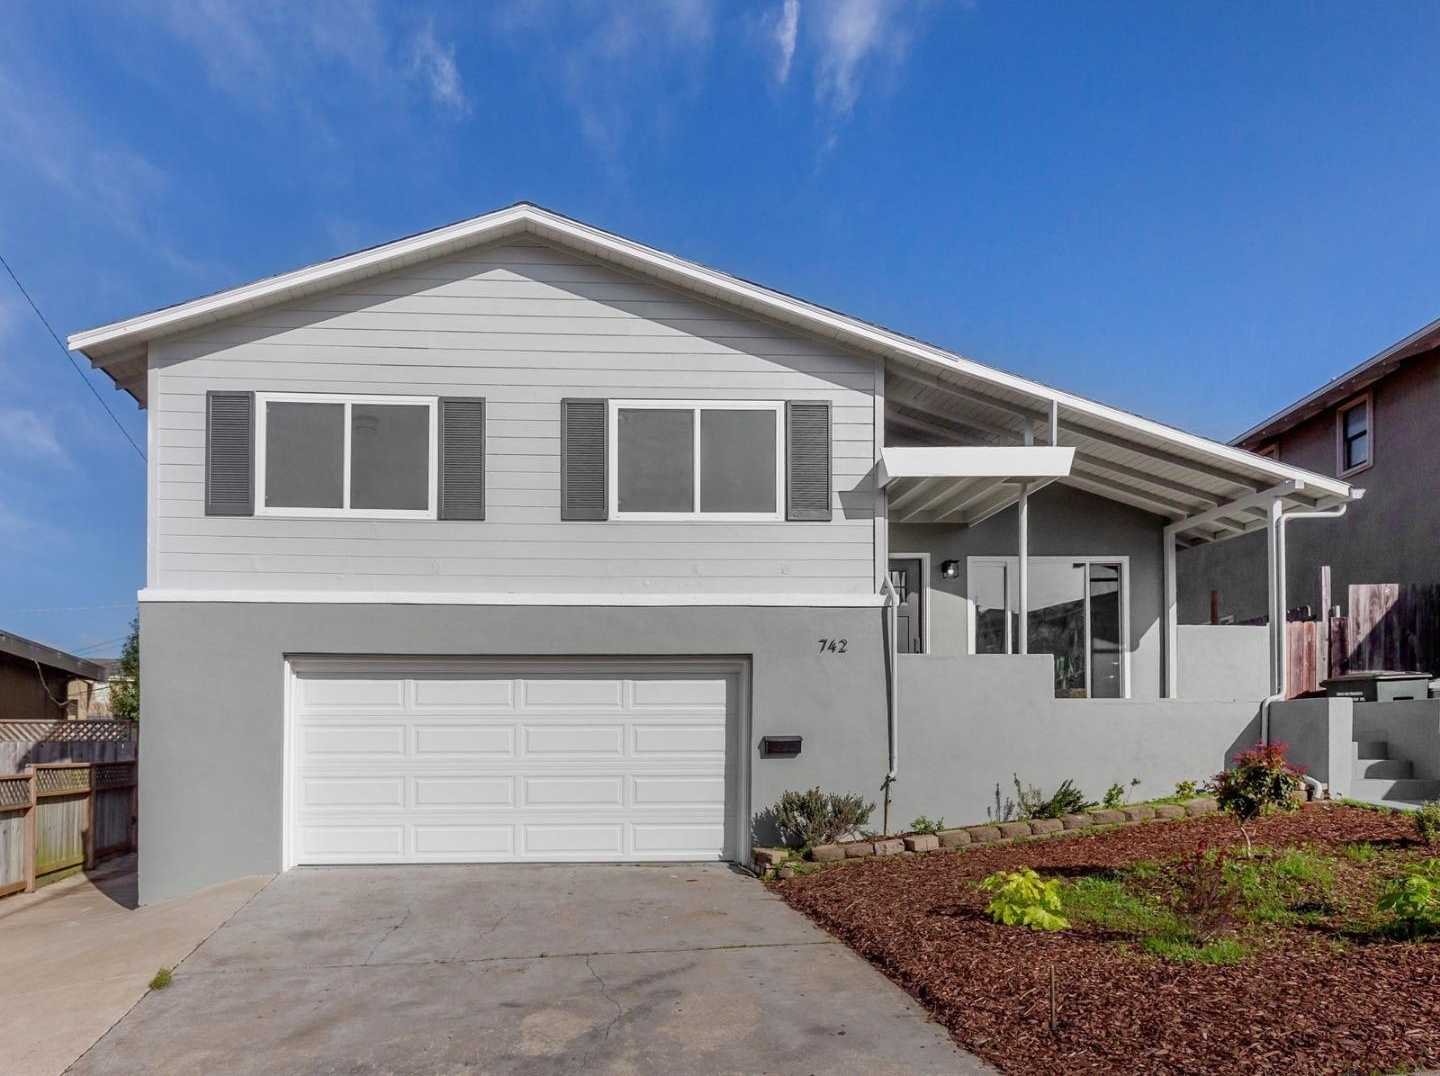 $1,048,000 - 4Br/3Ba -  for Sale in South San Francisco